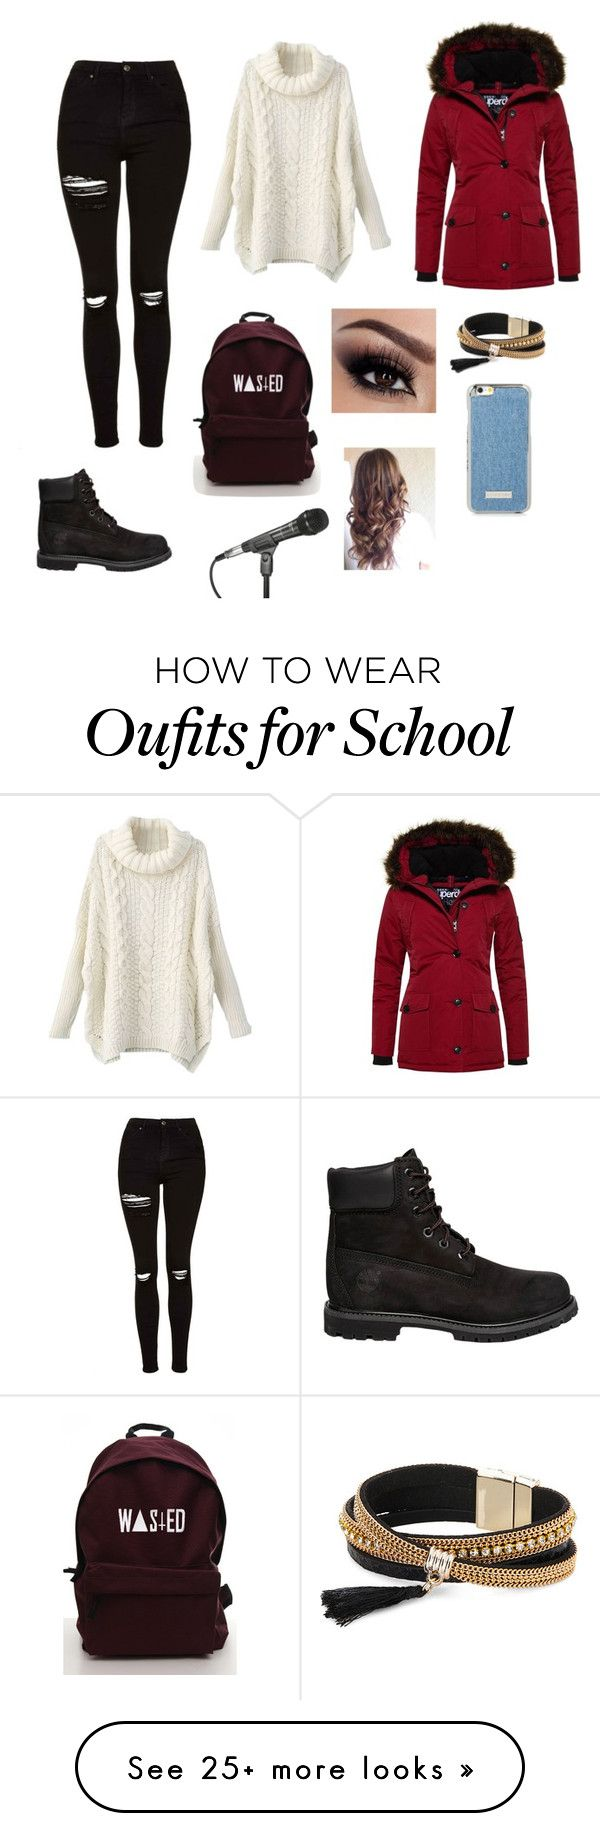 """Untitled #1154"" by catrinel-grigorescu on Polyvore featuring Topshop, Timberland, Superdry and Simons"